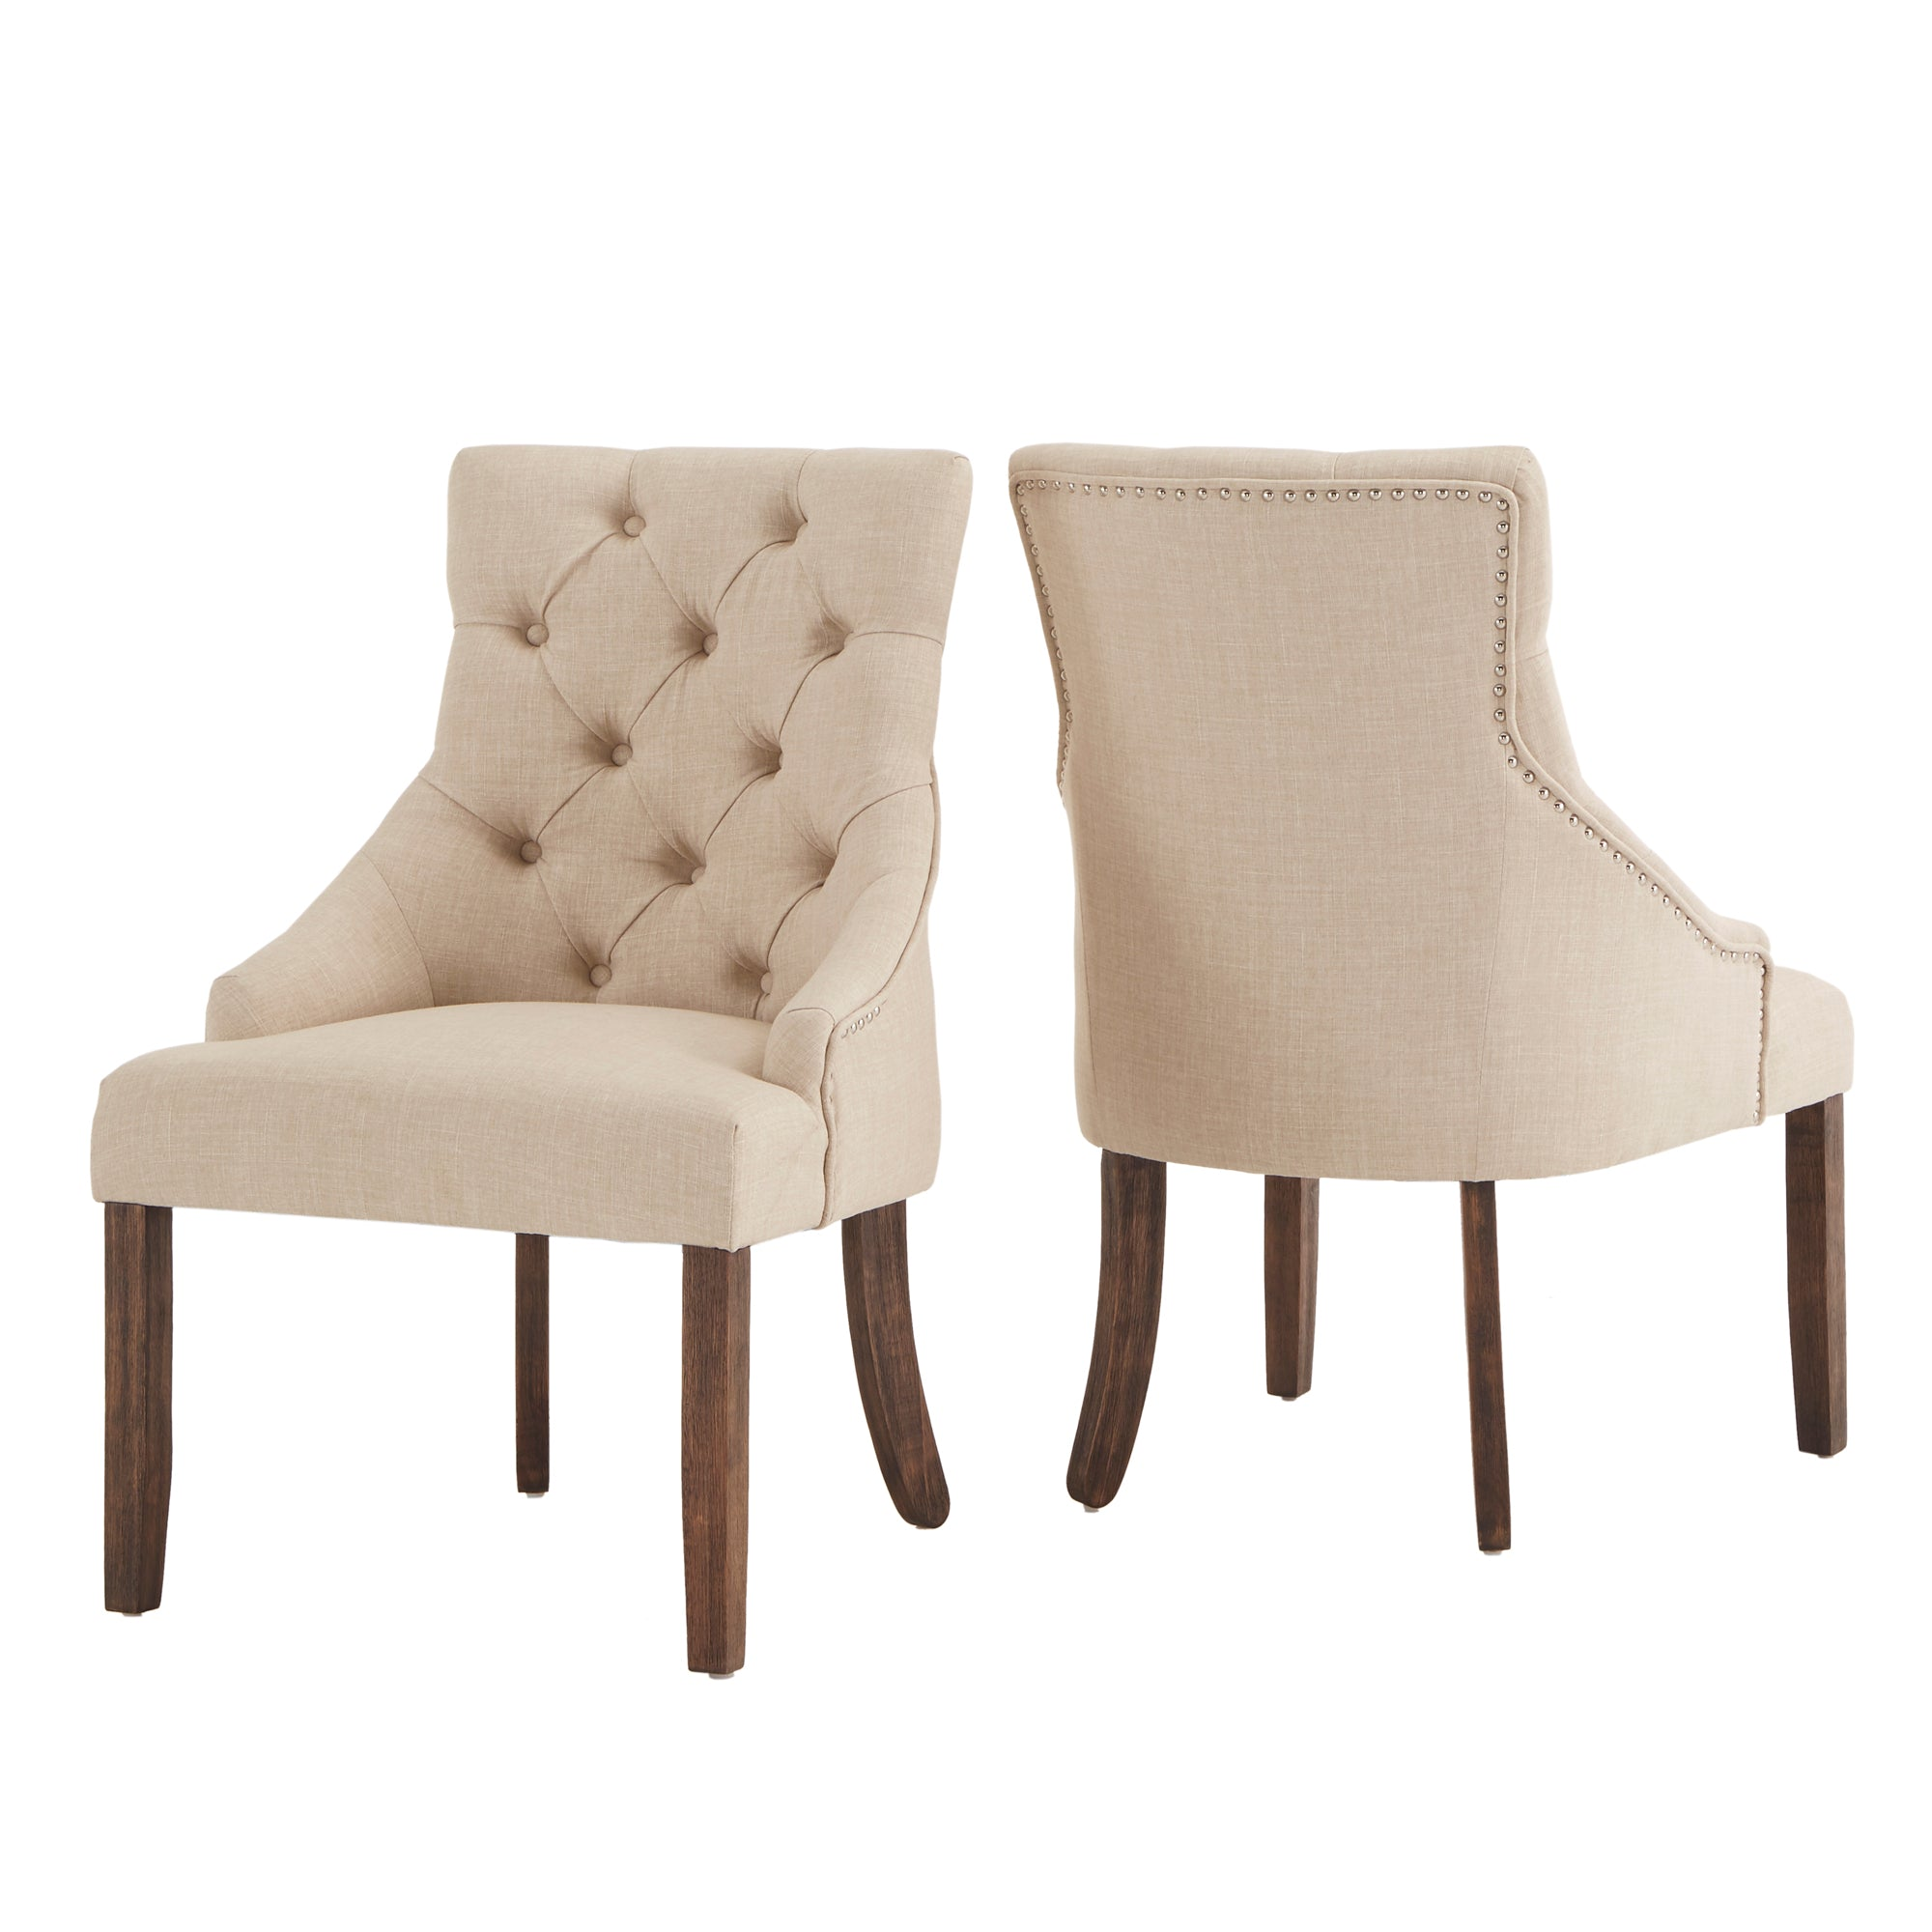 Linen Curved Back Tufted Dining Chair (Set of Two)